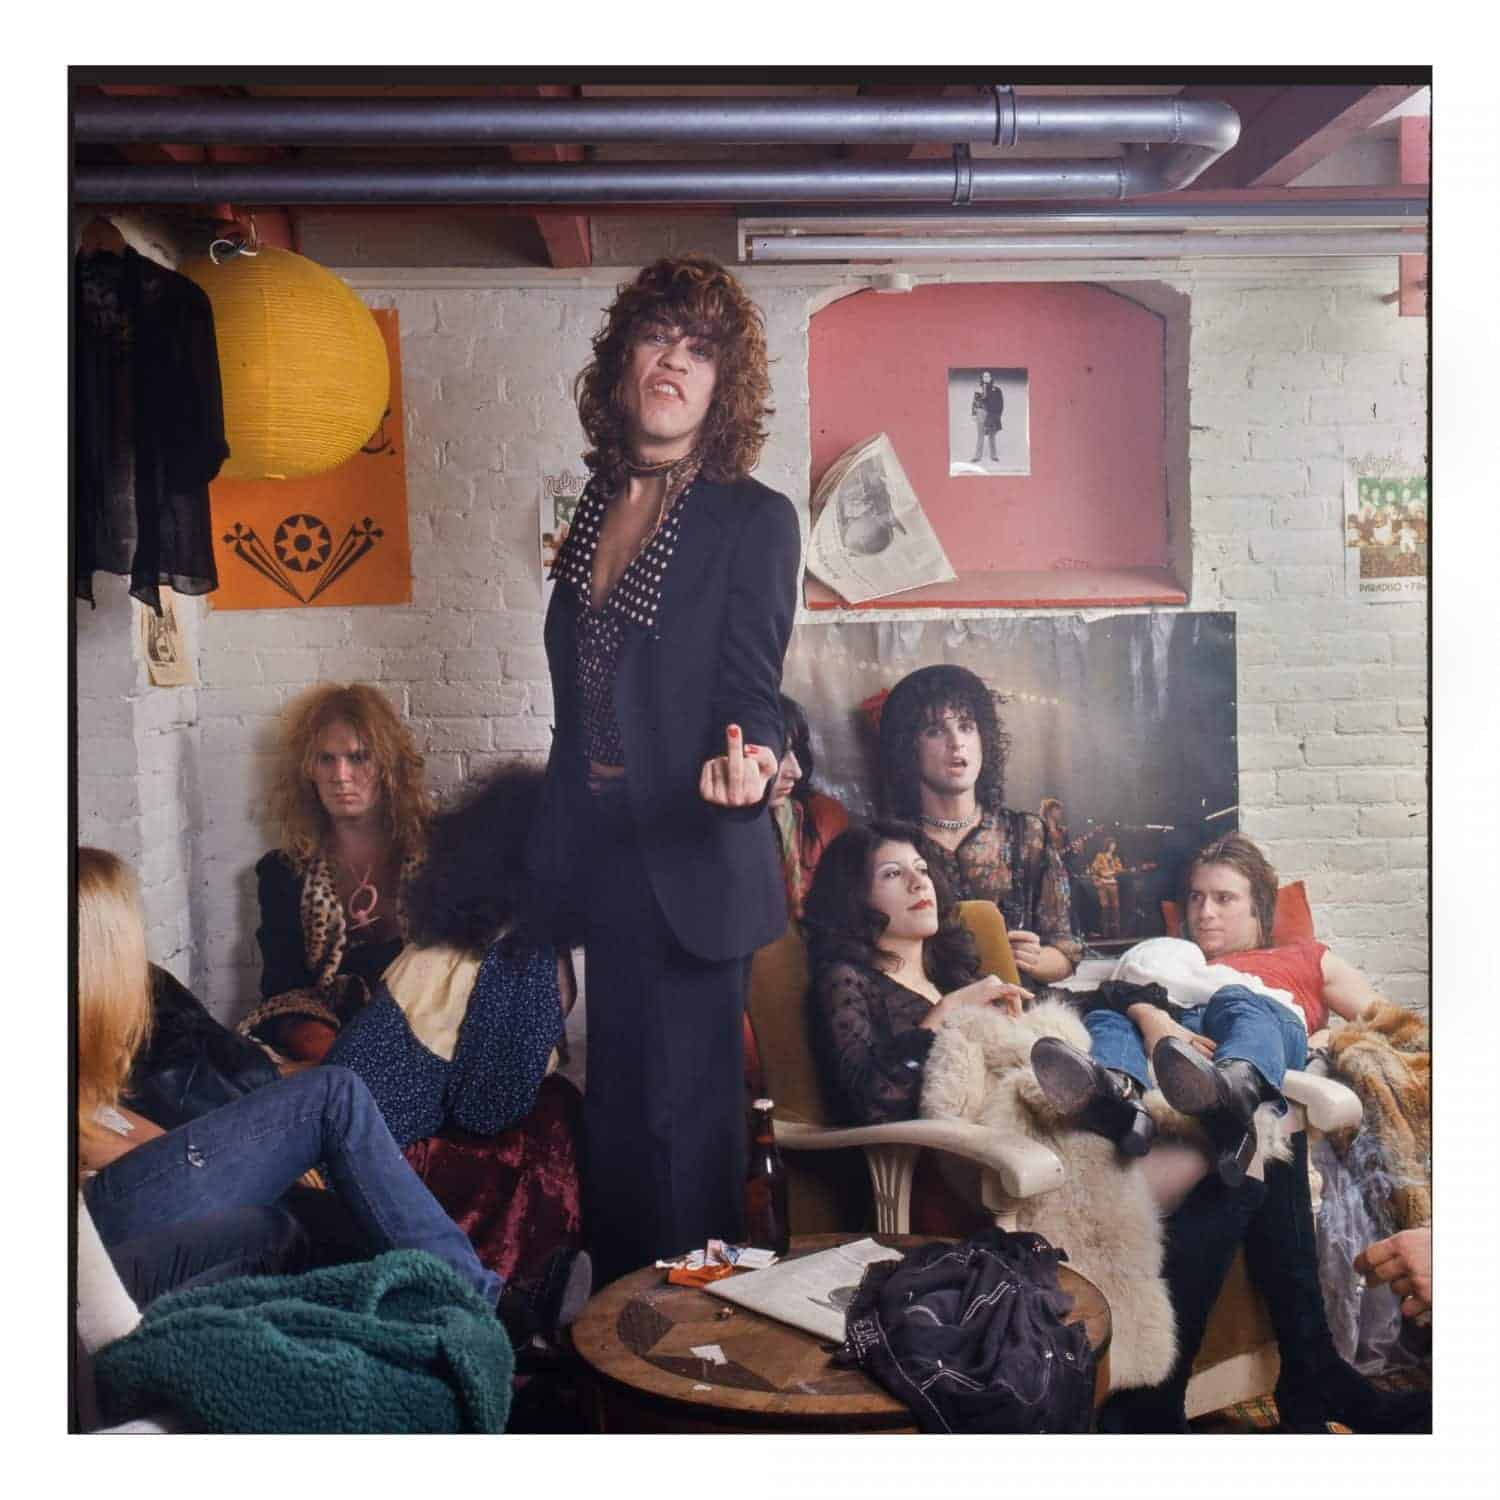 New York Dolls in Paradiso, (c) Gijsbert Hanekroot 1973.